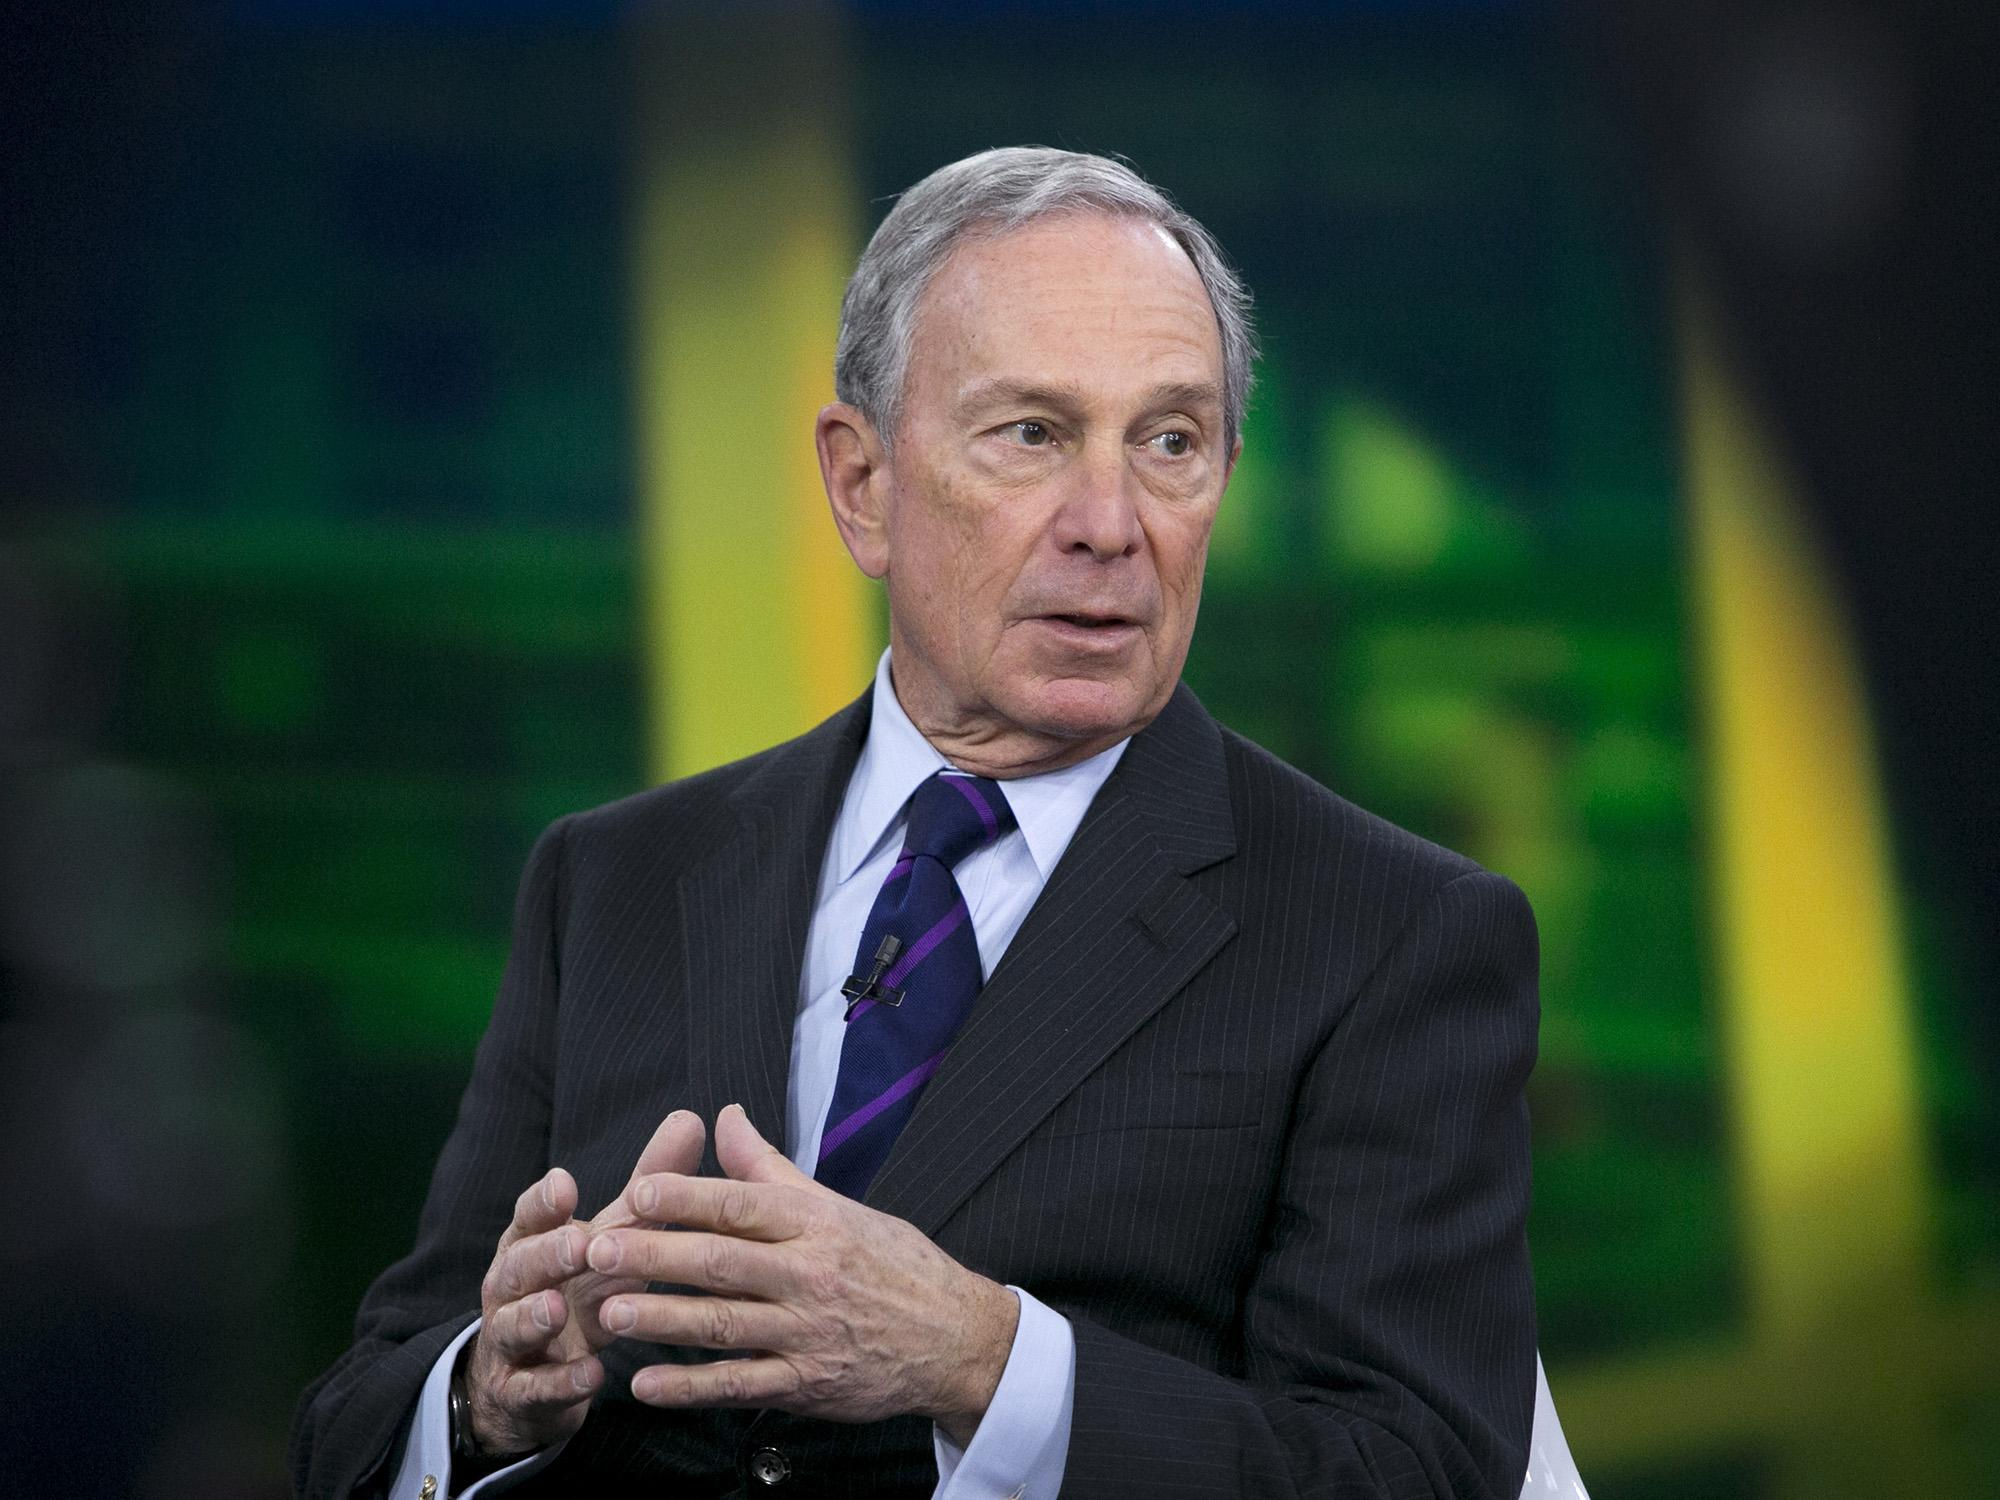 michael bloomberg - photo #27